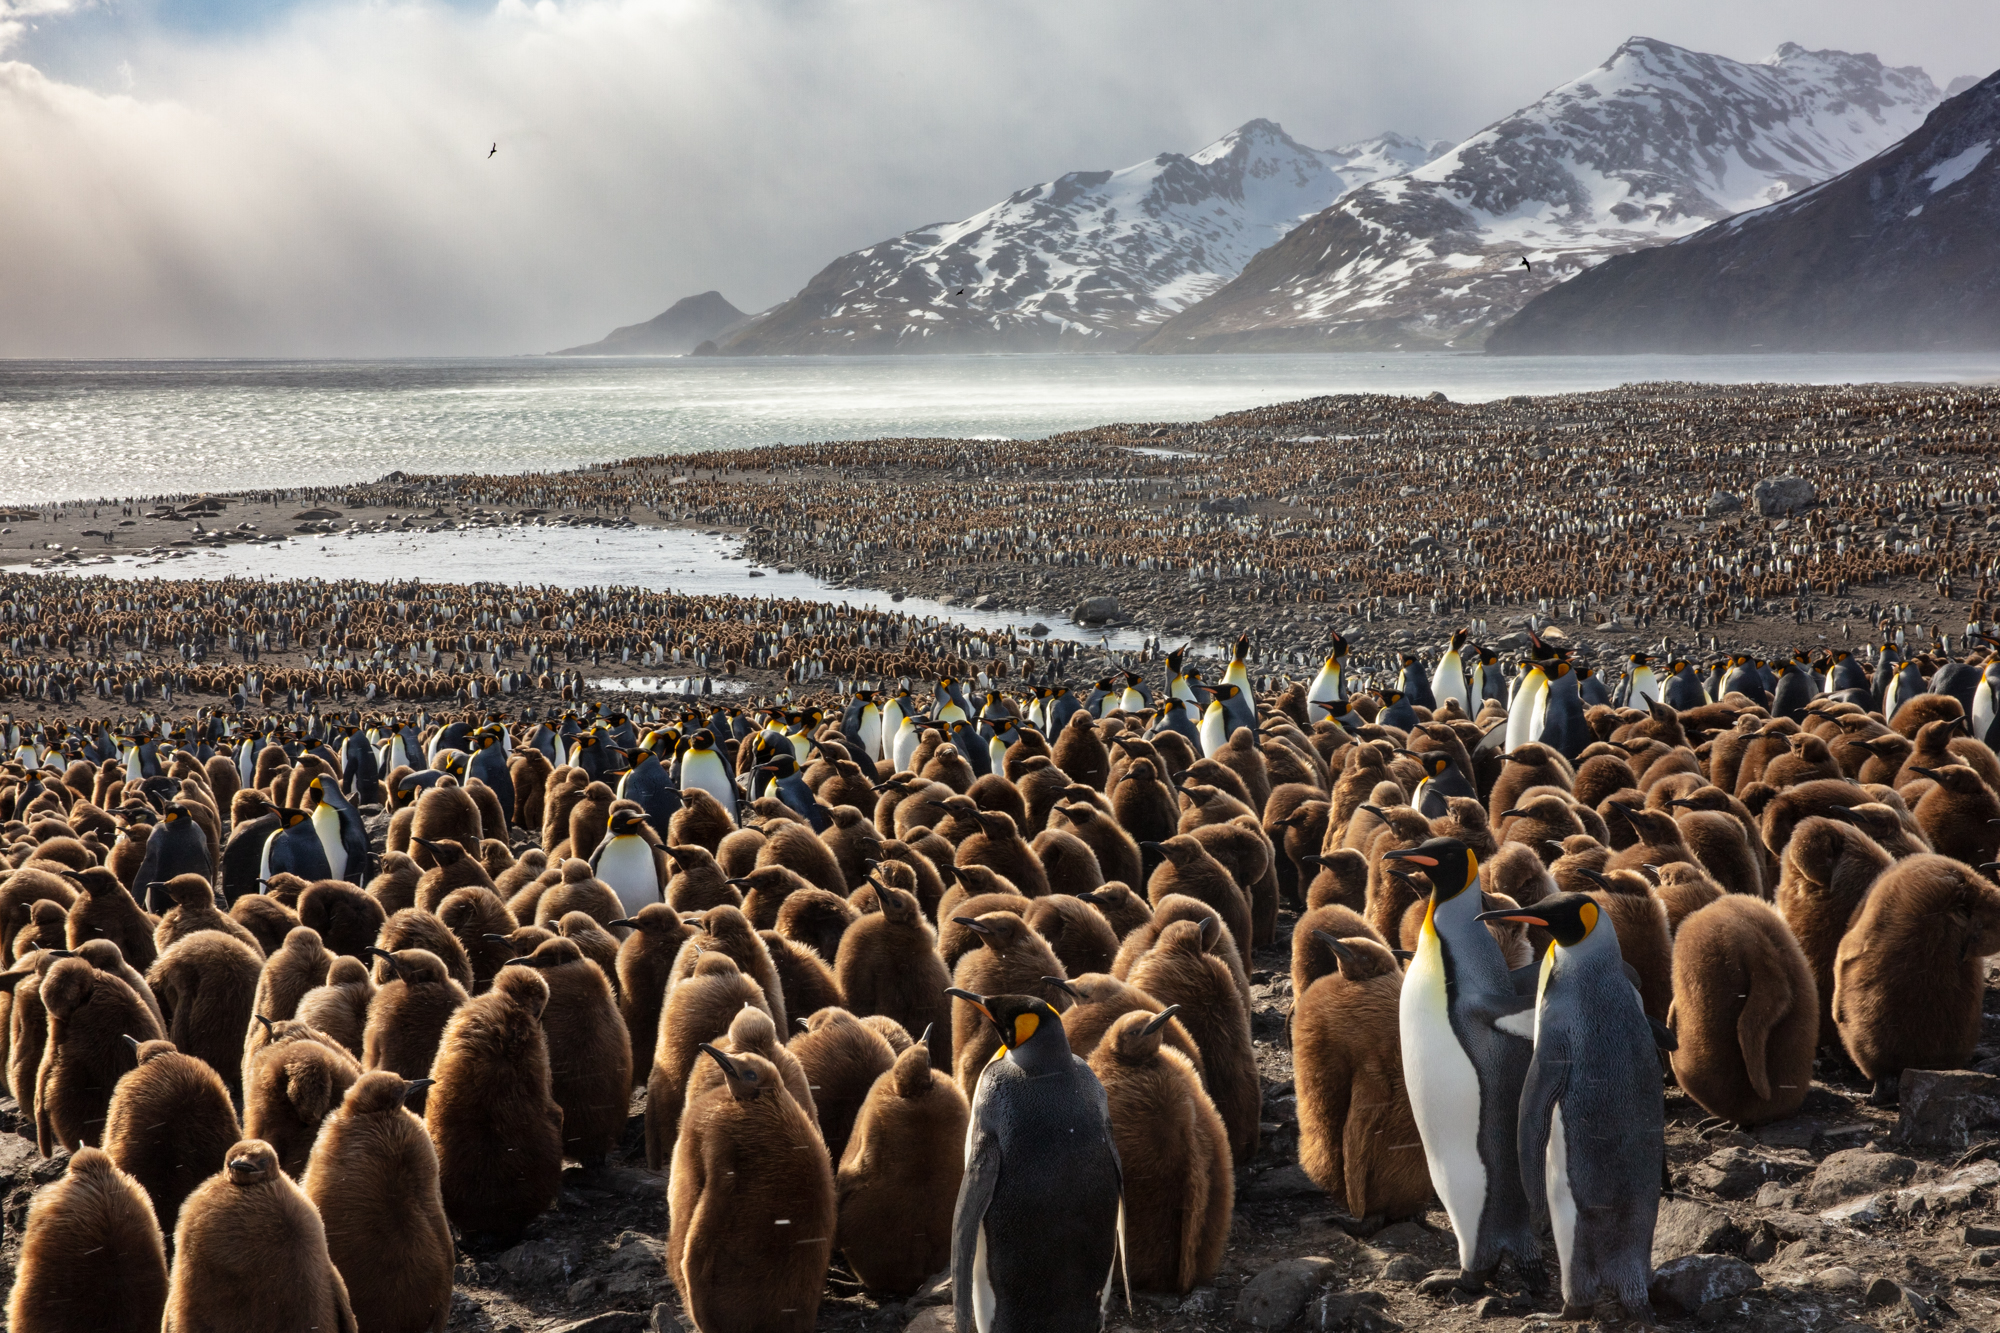 Though the outward appearance of South Georgia gives an aura of rugged inhospitality, few places on earth harbor the scale of life that congregates on the beaches of the remote island in the Southern Ocean. King penguins, which are among the island's most visible residents, gather in numbers that seem to defy reality.  When we approached the coast of South Georgia, before I set eyes on the colony, I could hear the deafening roar of penguins calling to one another in the distance; more than 500,000 voices echoing across the bay.  When the sun rose and the island's largest colony came into full view, nothing could have prepared me for the spectacle of nature covering the landscape as far as the eye could see.  It is in this place, under the shadow of wind blasted mountains and glaciers that King penguins have found an unlikely home. South Georgia is as rugged as a place can come, but nature on such scales does not happen by accident.